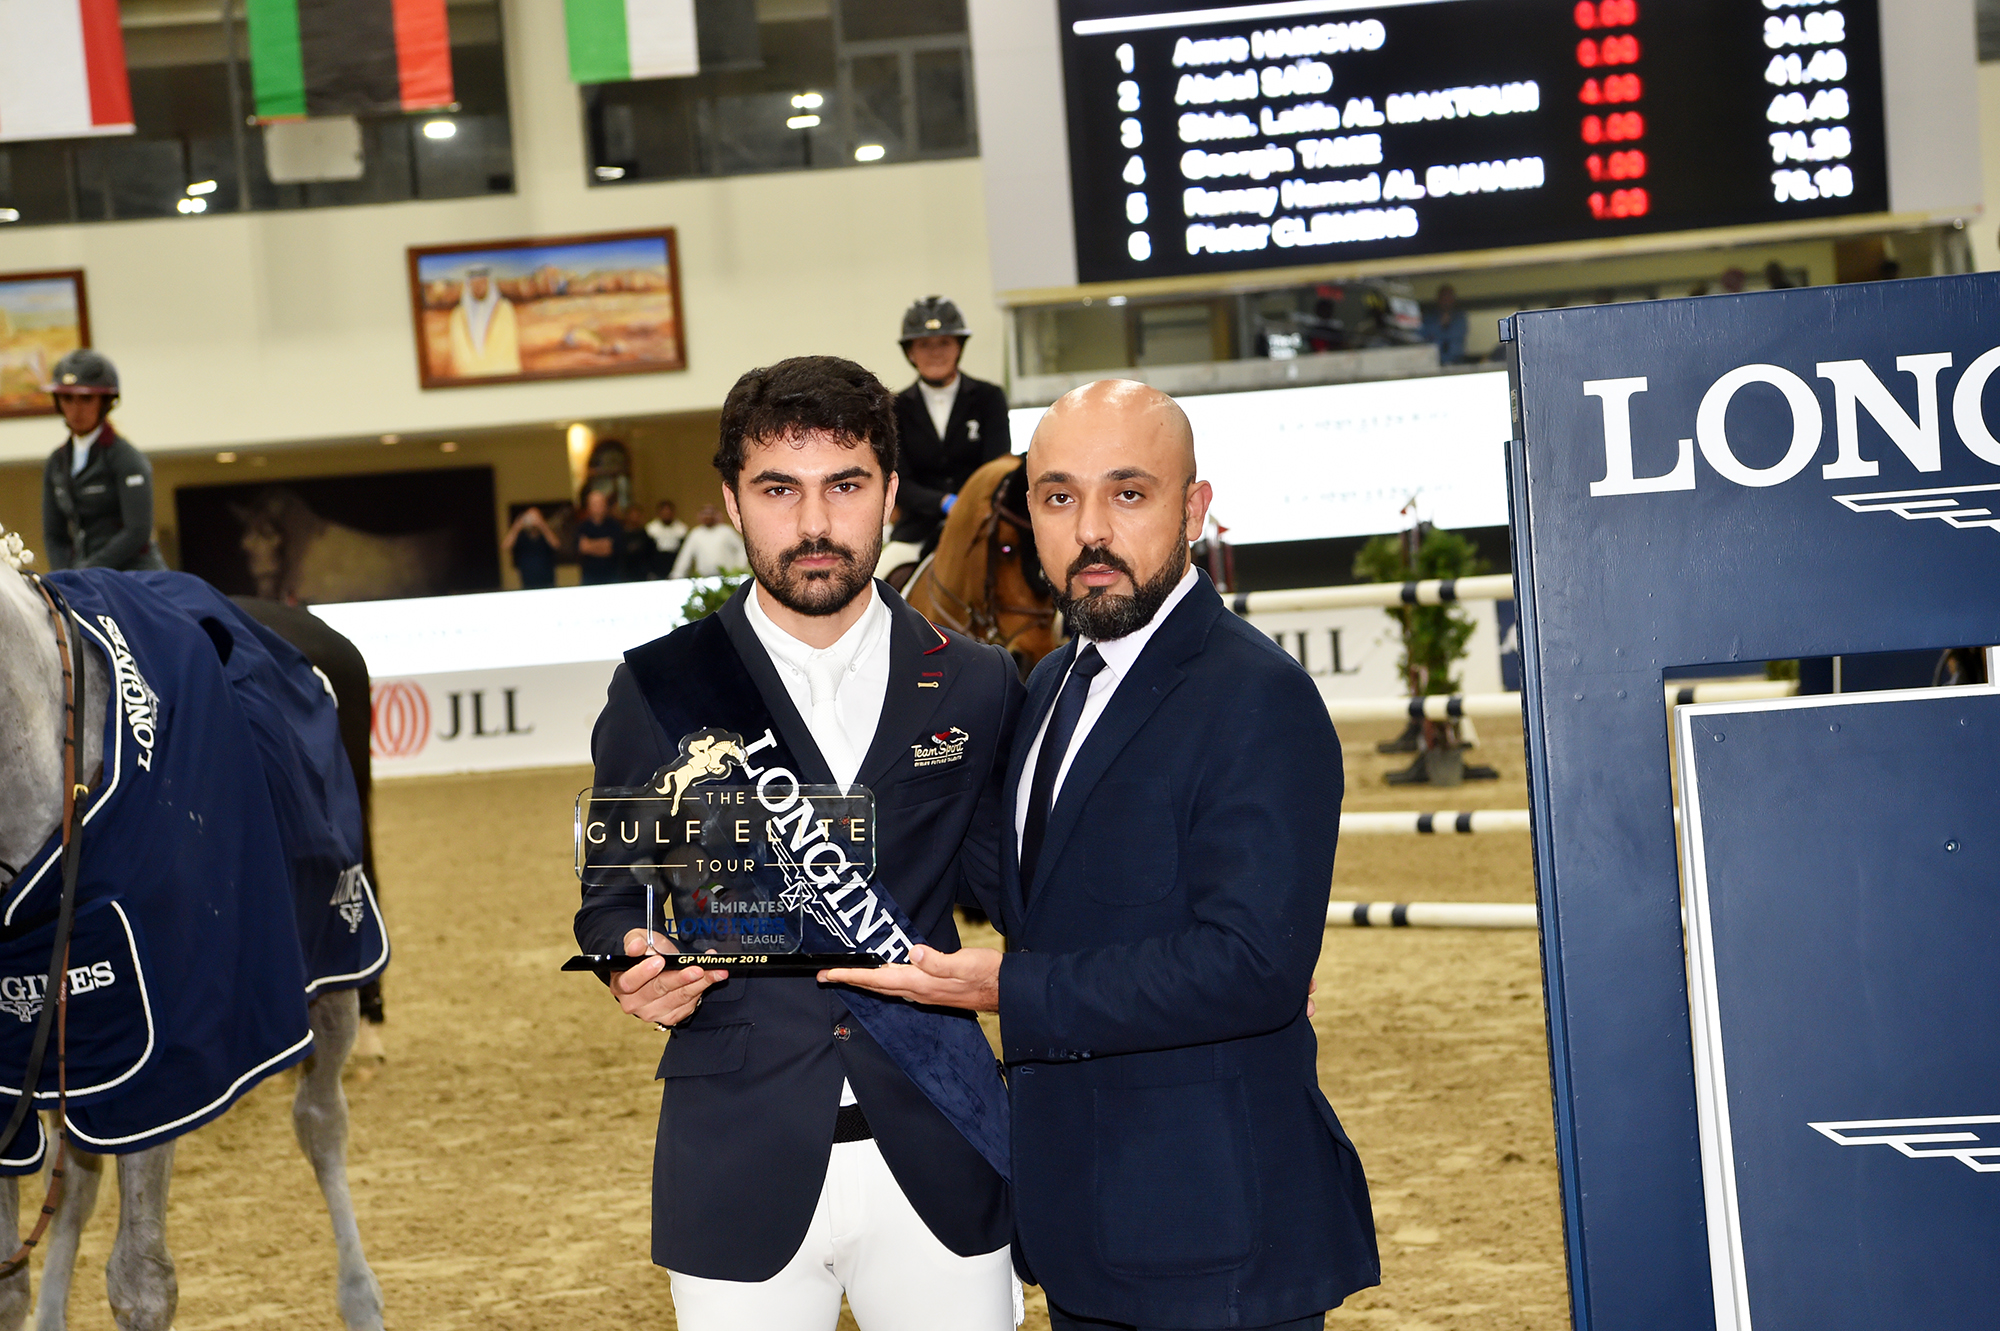 Horse Times Egypt: Equestrian Magazine :News :Syrian Omar Hamsho on horse Lordano claims the Longines Grand Prix at the 2018 Gulf Elite Tour CSI2*